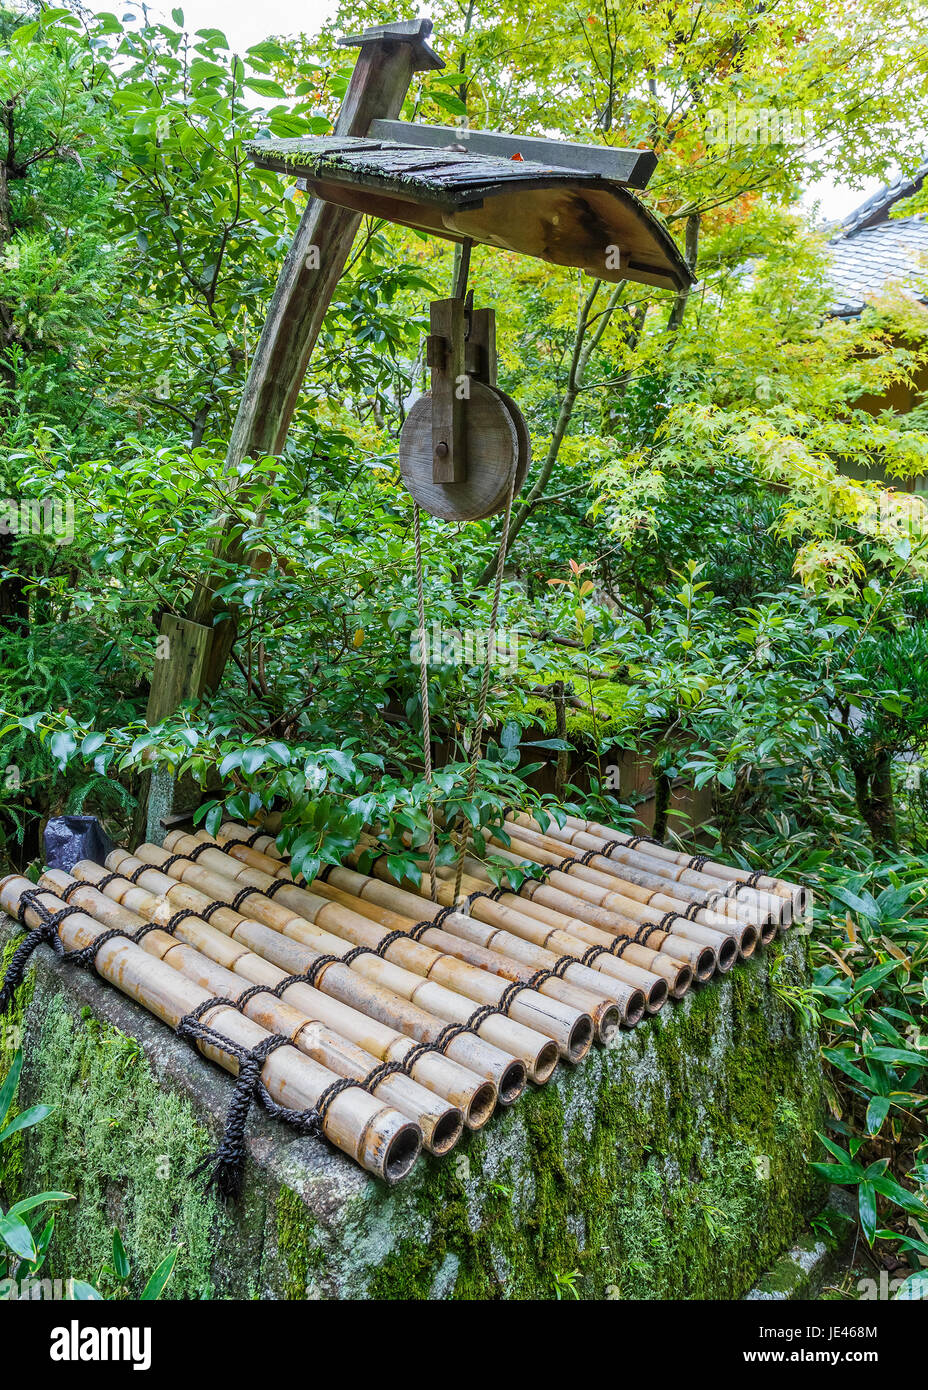 Japanese Pulley at Artesian wells in Koto-in Temple in Kyoto, Japan - Stock Image